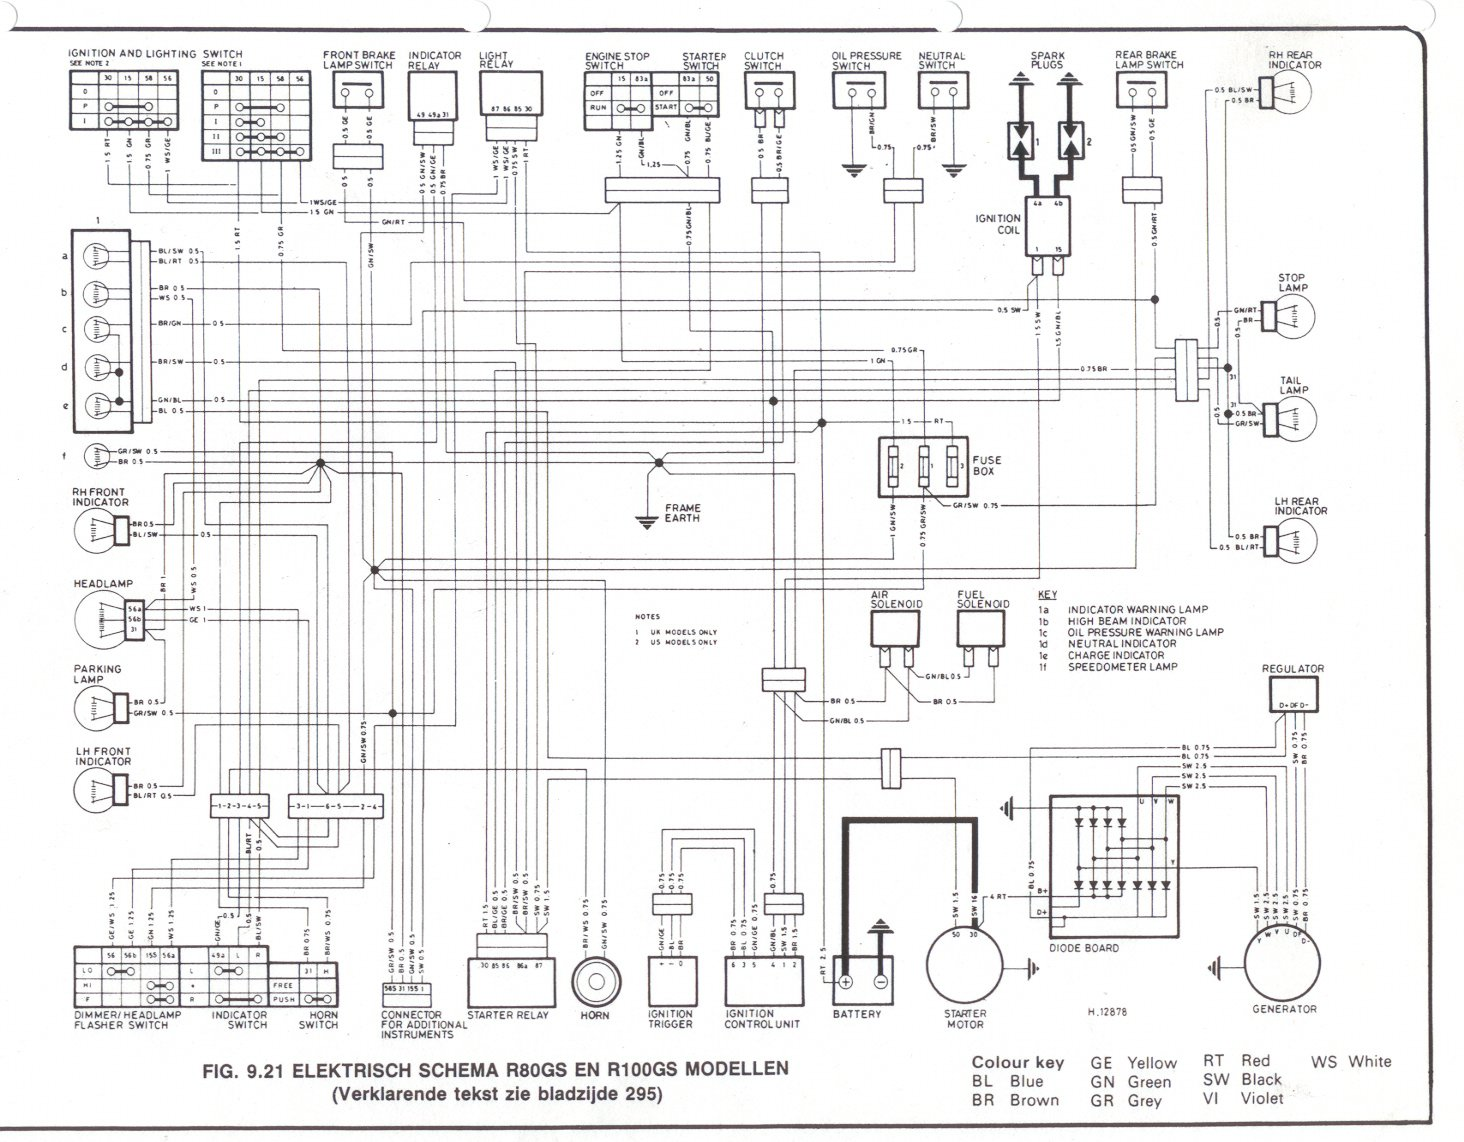 2001 vw gti stereo wiring diagram auto electrical wiring diagram wiring diagram rinker 270 2002 [ 1464 x 1142 Pixel ]